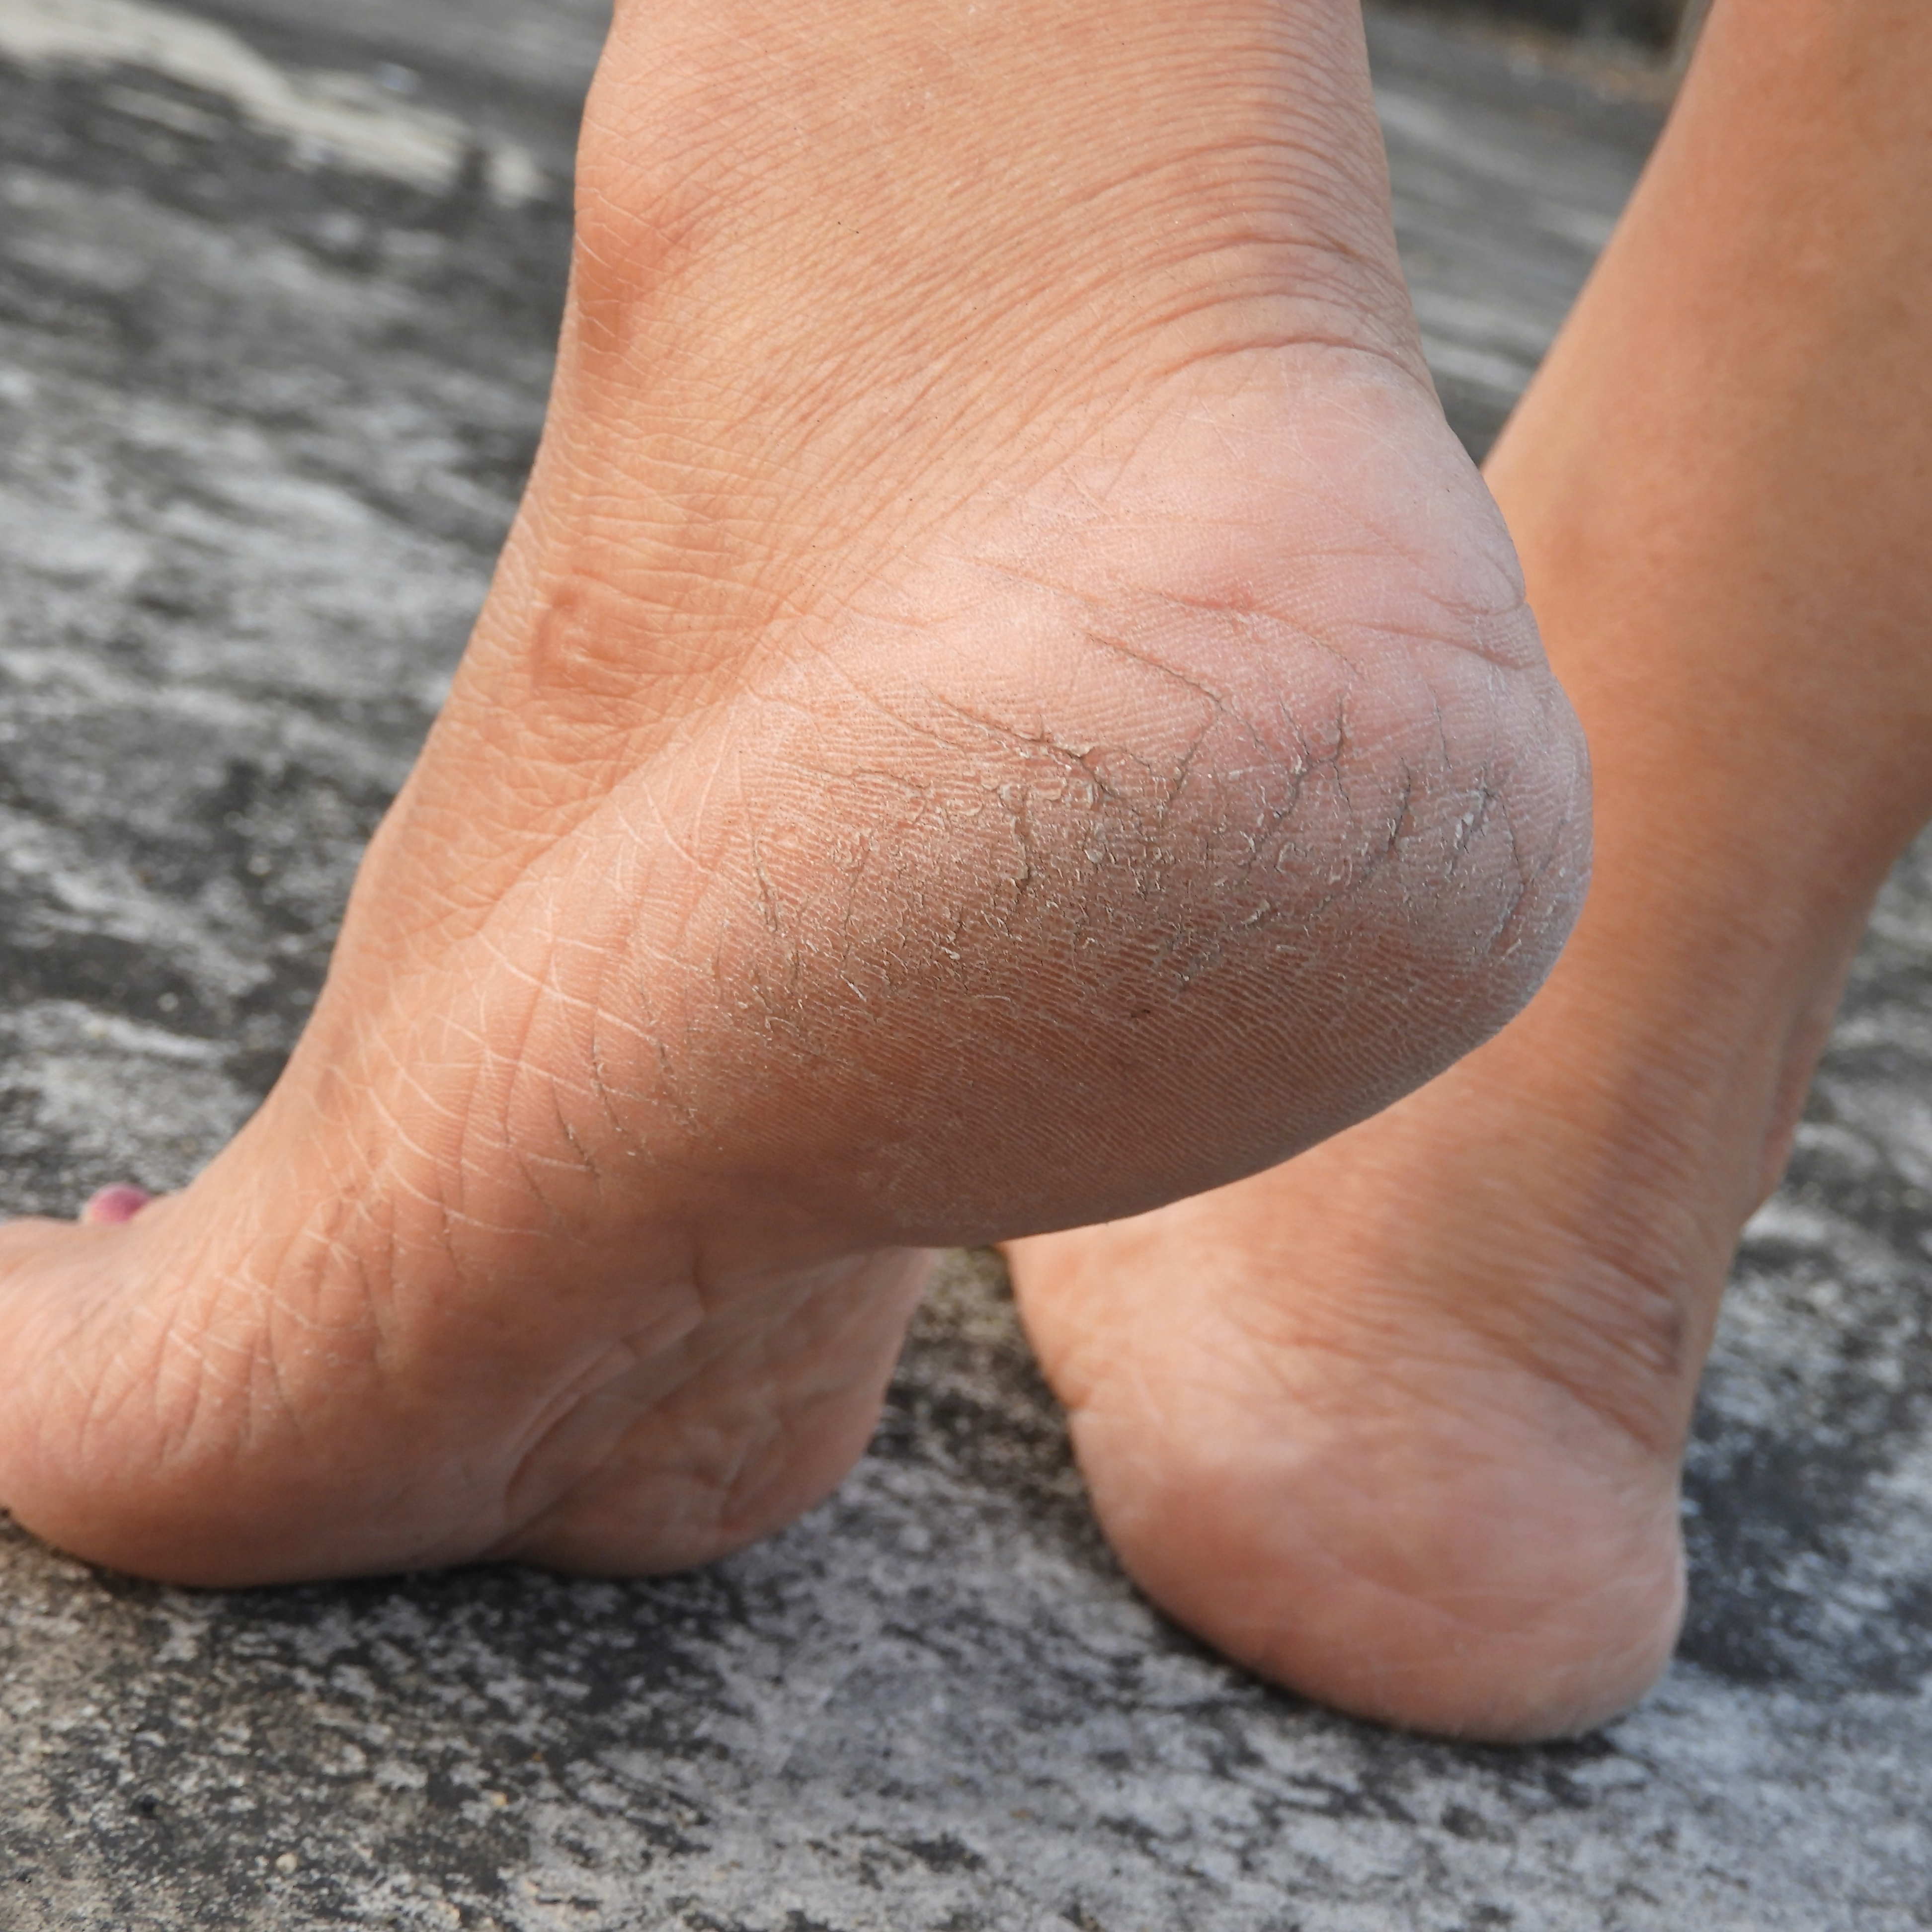 Cracked-heels-on-a-woman's-foot